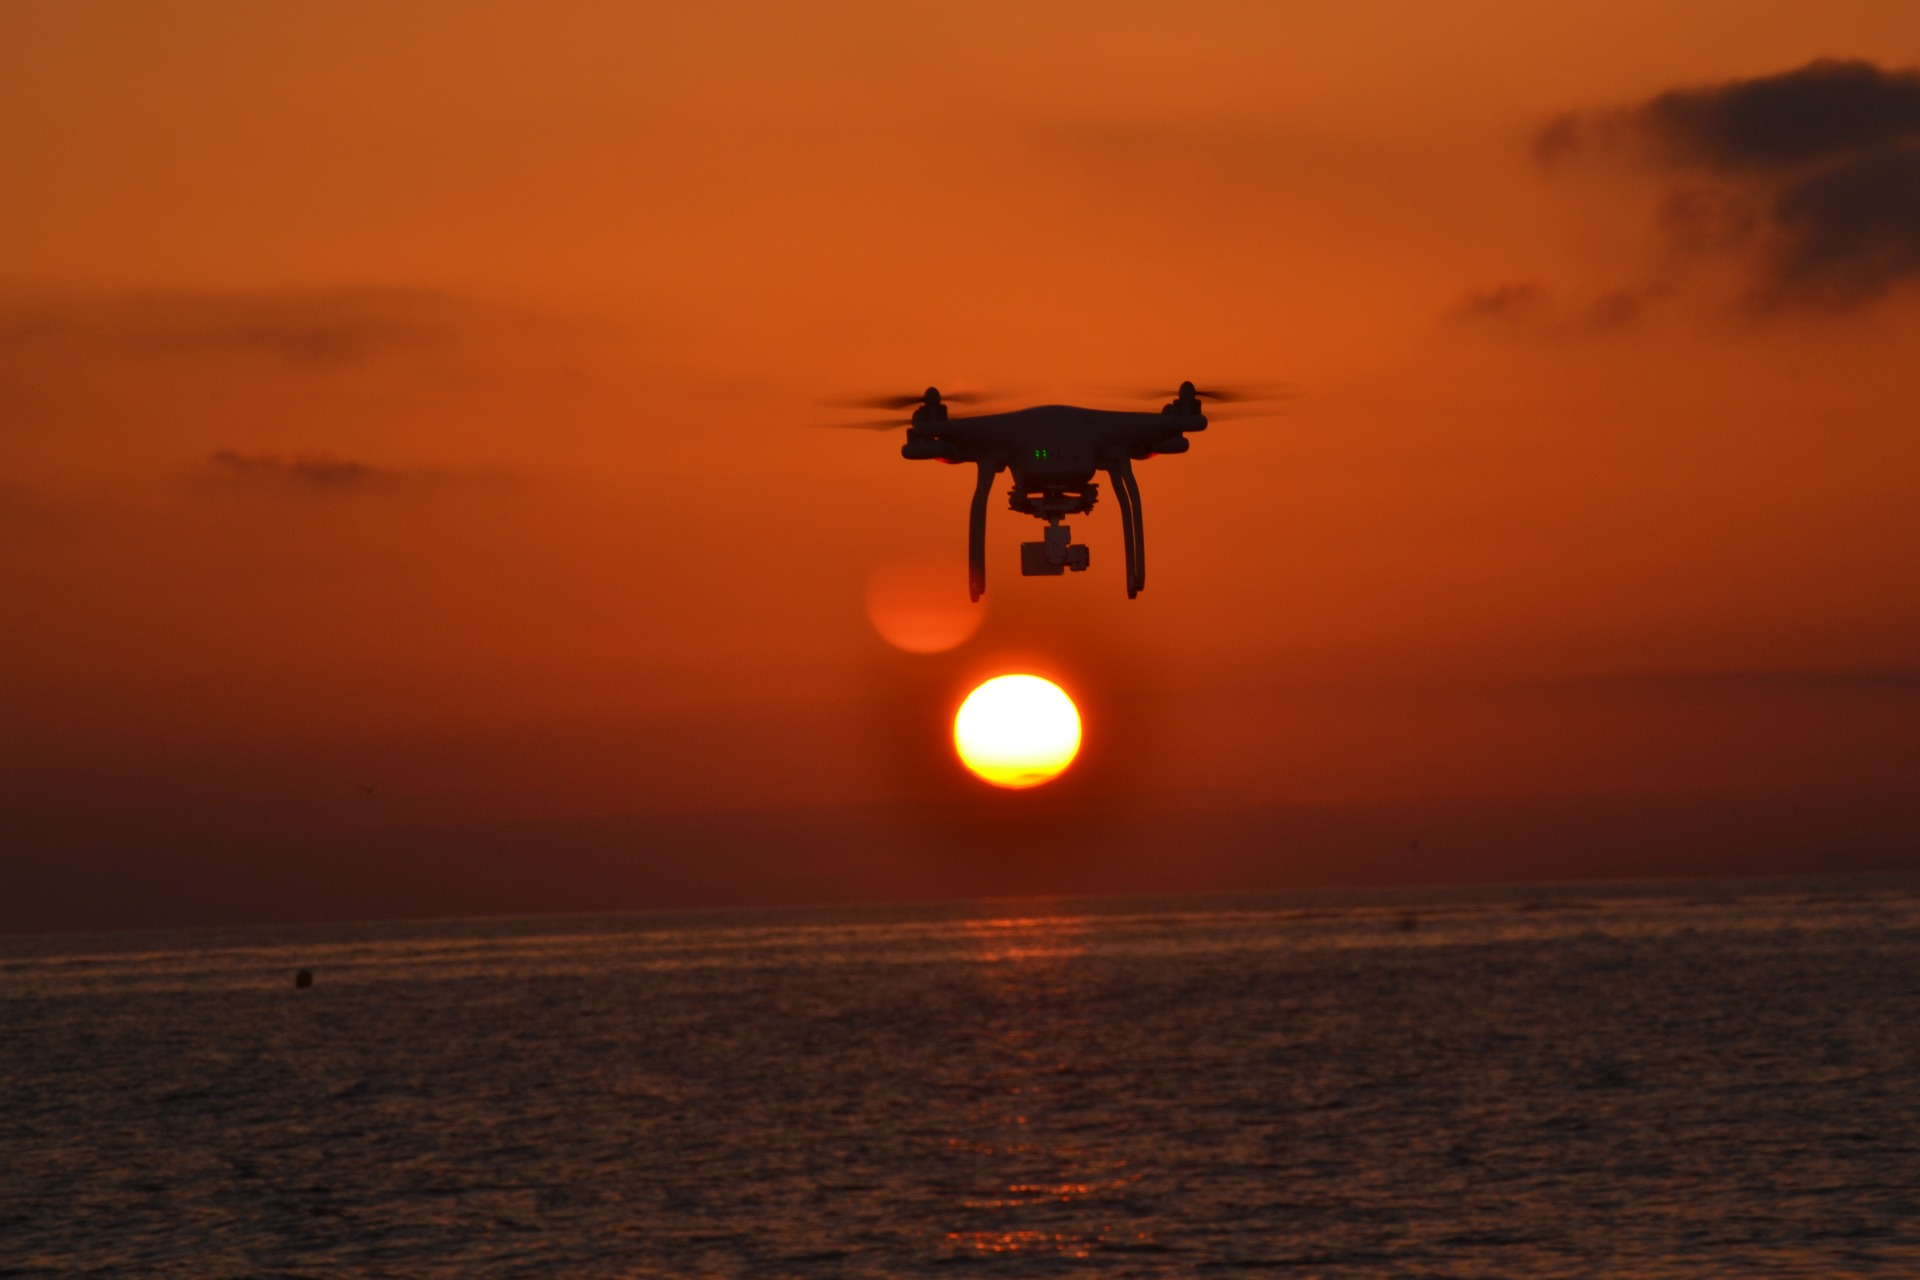 Drone flying over sea at sunset